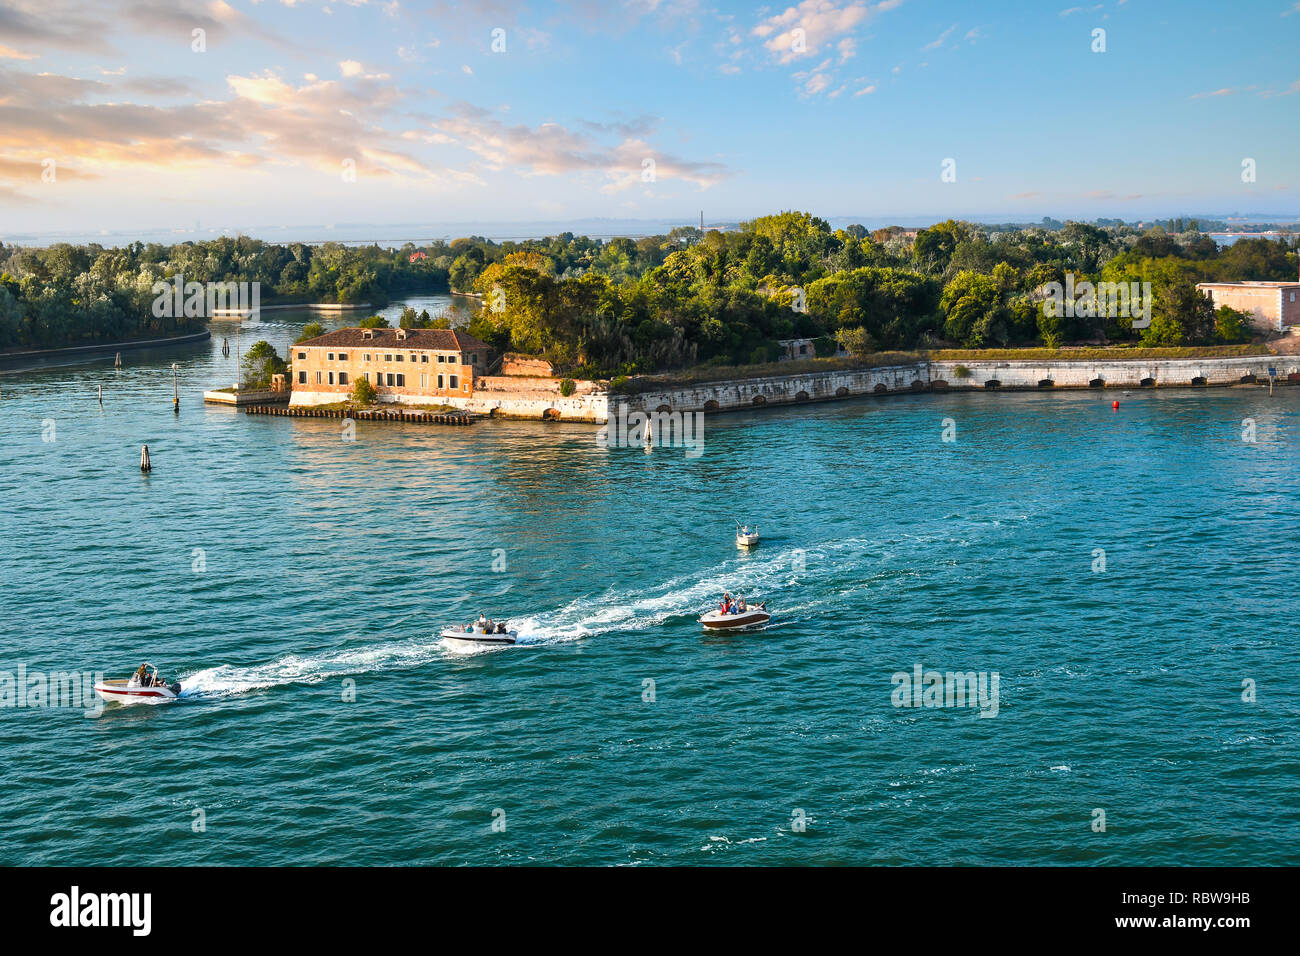 a-group-of-small-motor-boats-cruise-past-one-of-the-outlying-islands-near-poveglia-in-the-waters-off-of-venice-italy-RBW9HB.jpg